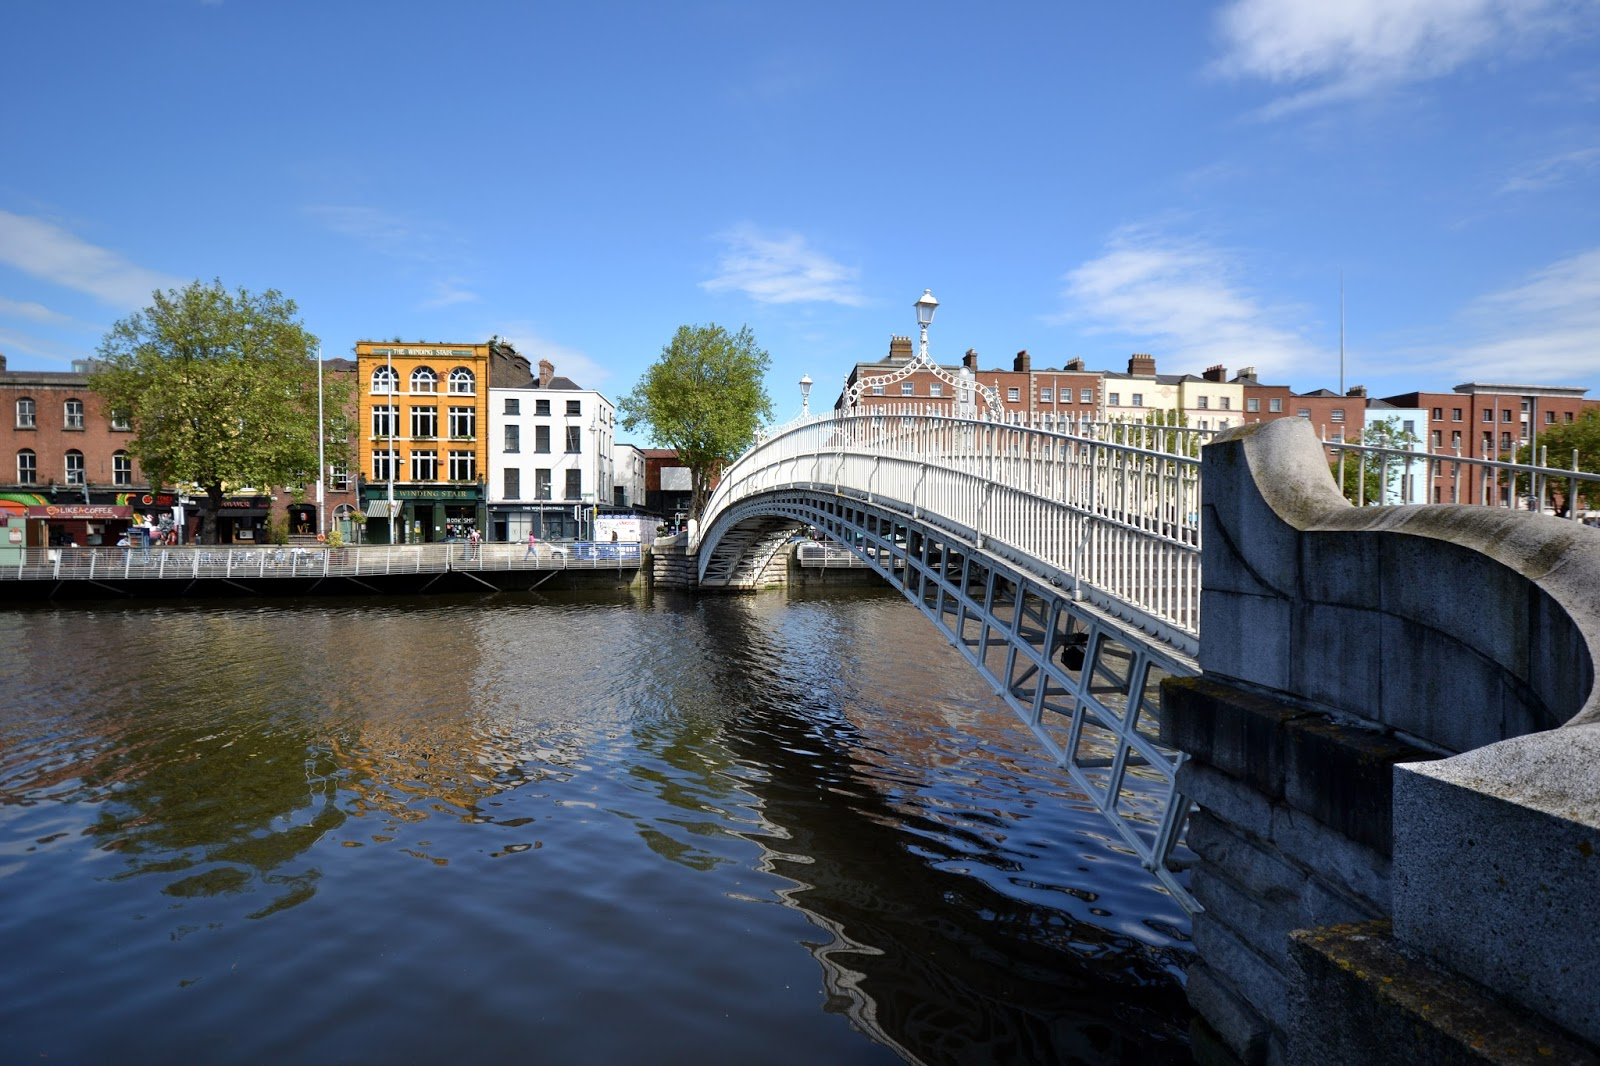 https://www.theroamingrenegades.com/2014/06/guide-and-report-to-historic-dublin.html